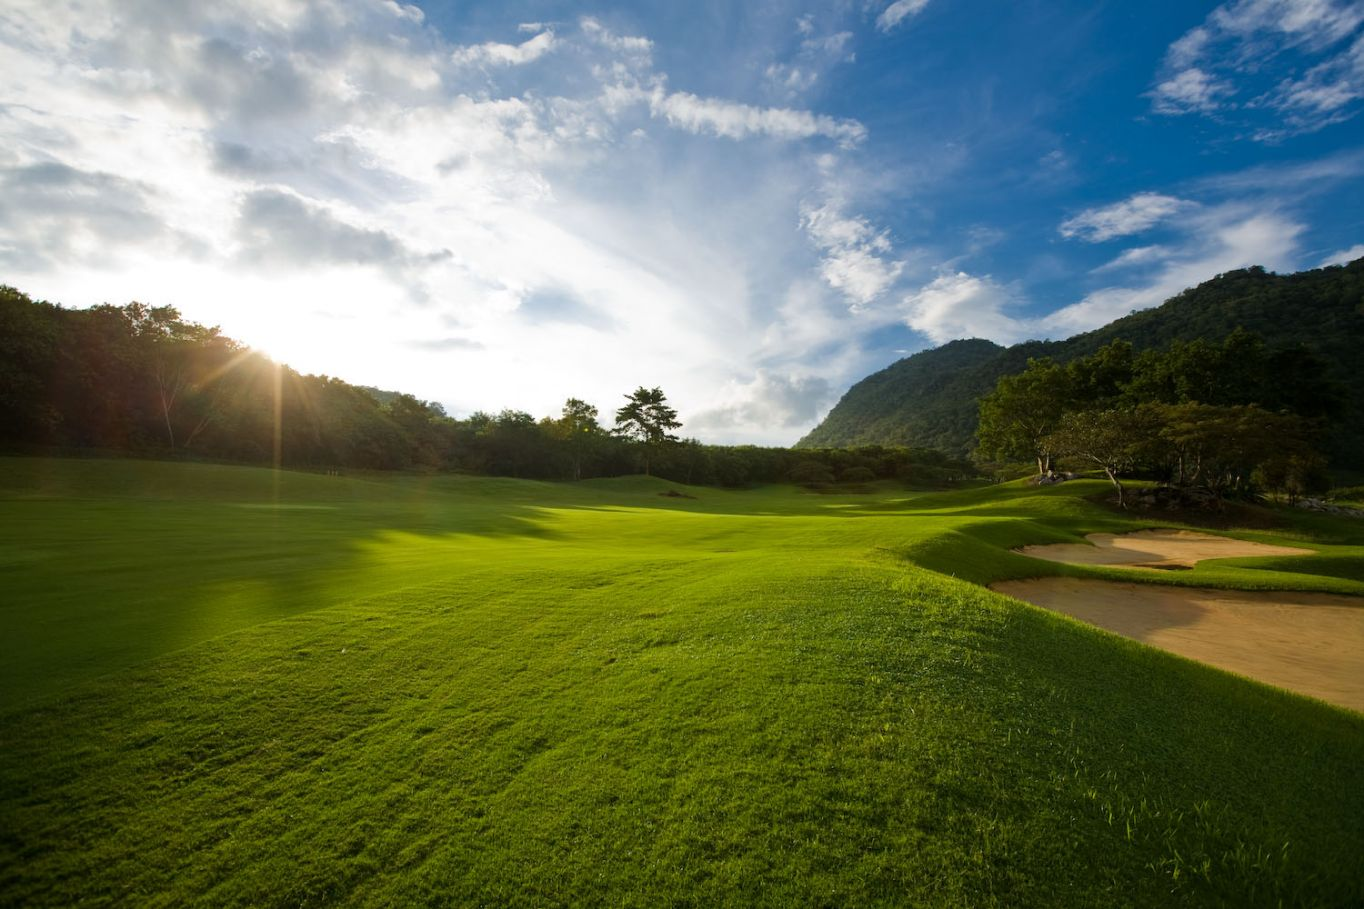 Mission Hills Khao Yai Golf